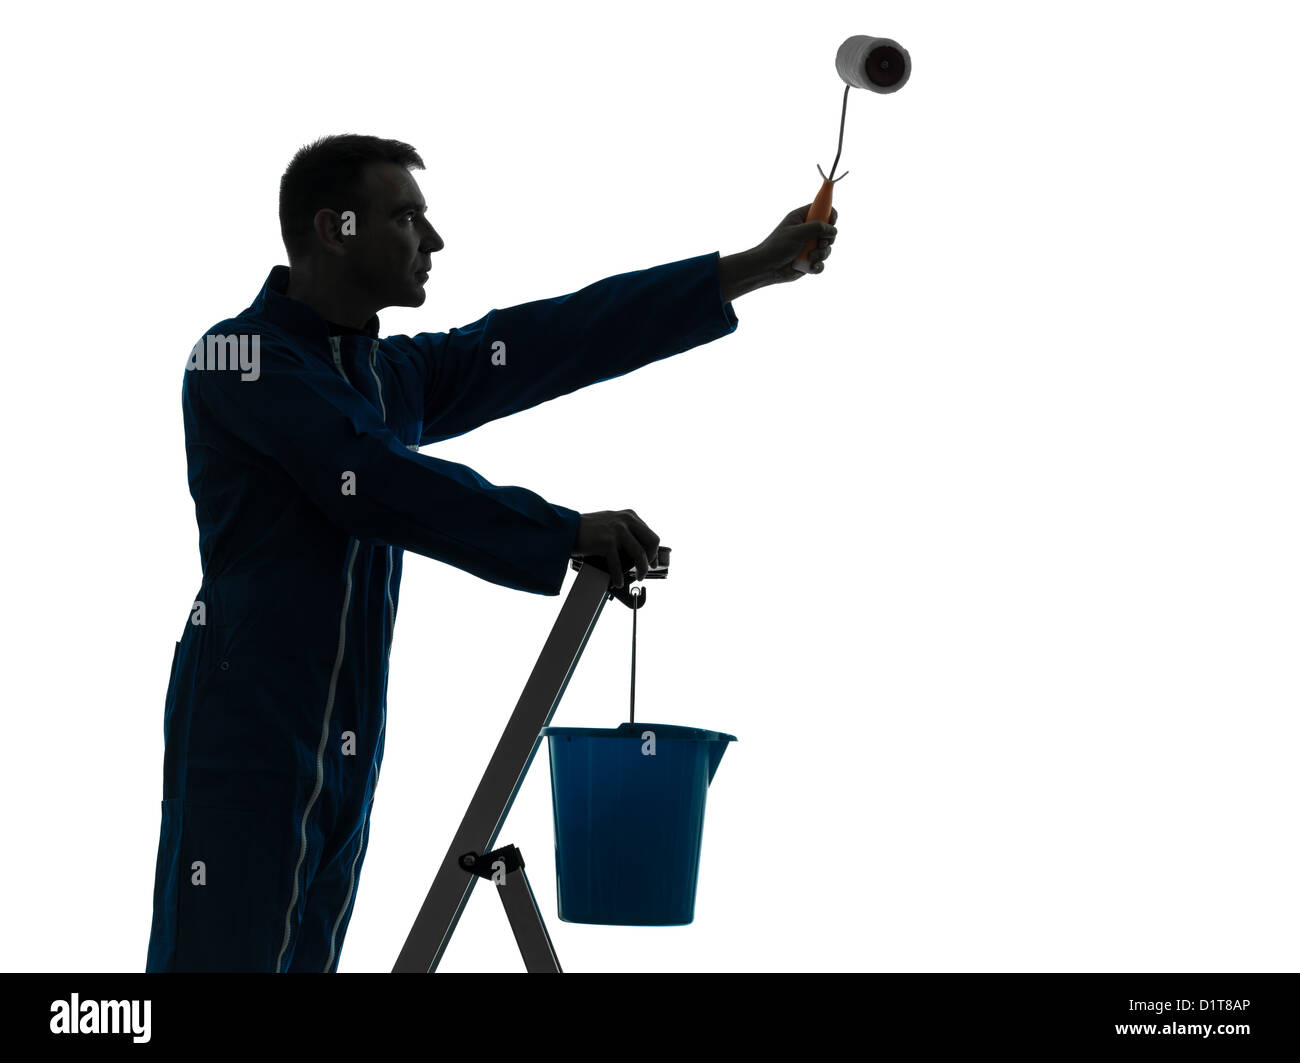 one  man house painter worker silhouette in studio on white background - Stock Image